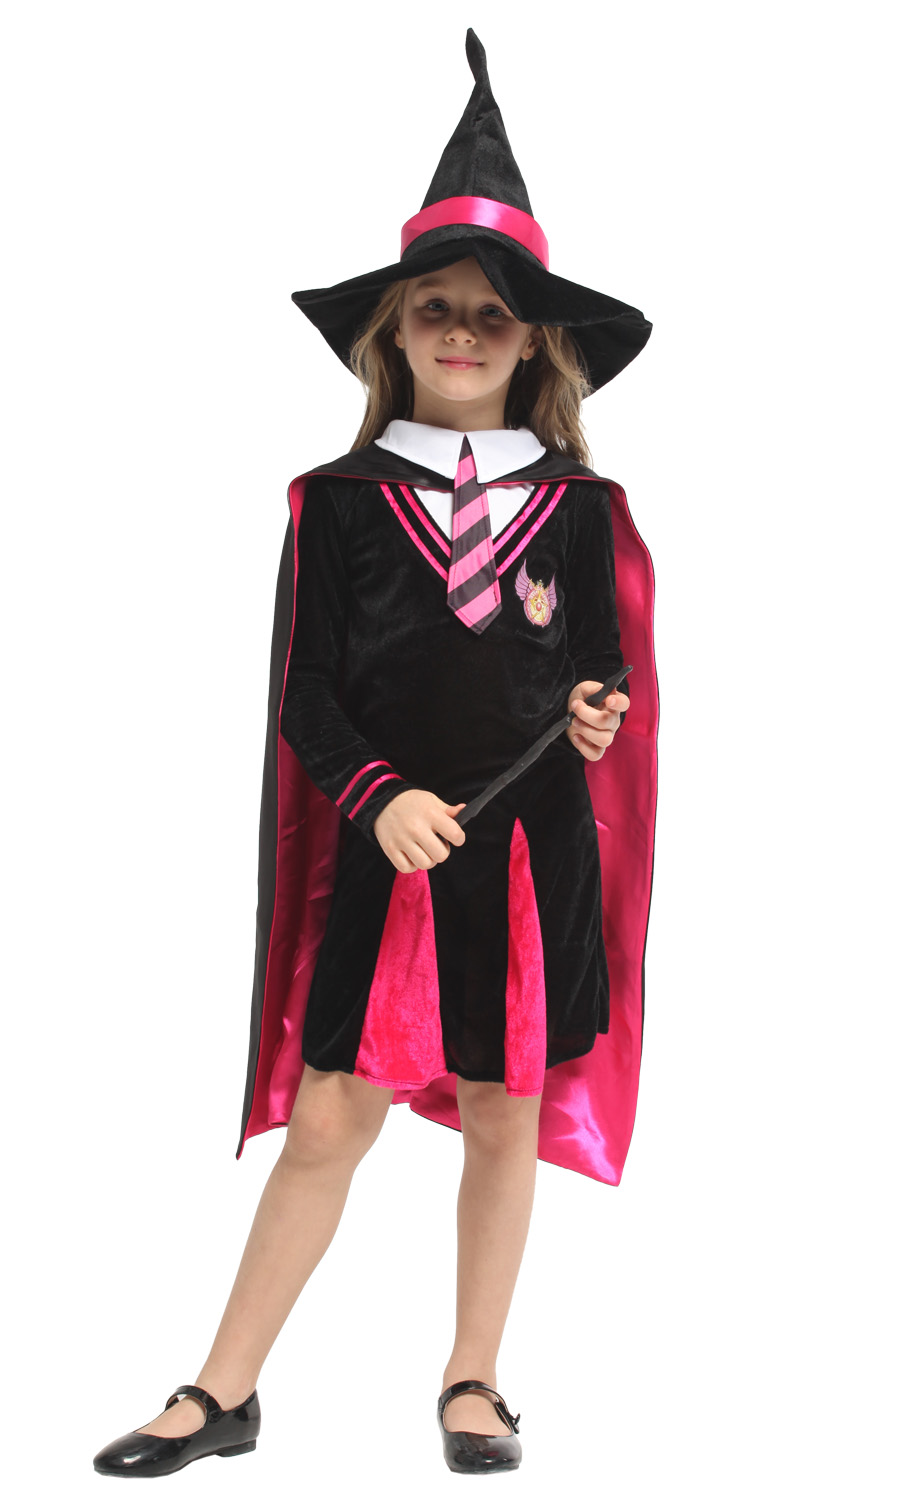 Vestito con procedura guidata per bambini Unisex Costume Halloween Night Party Wear Costume